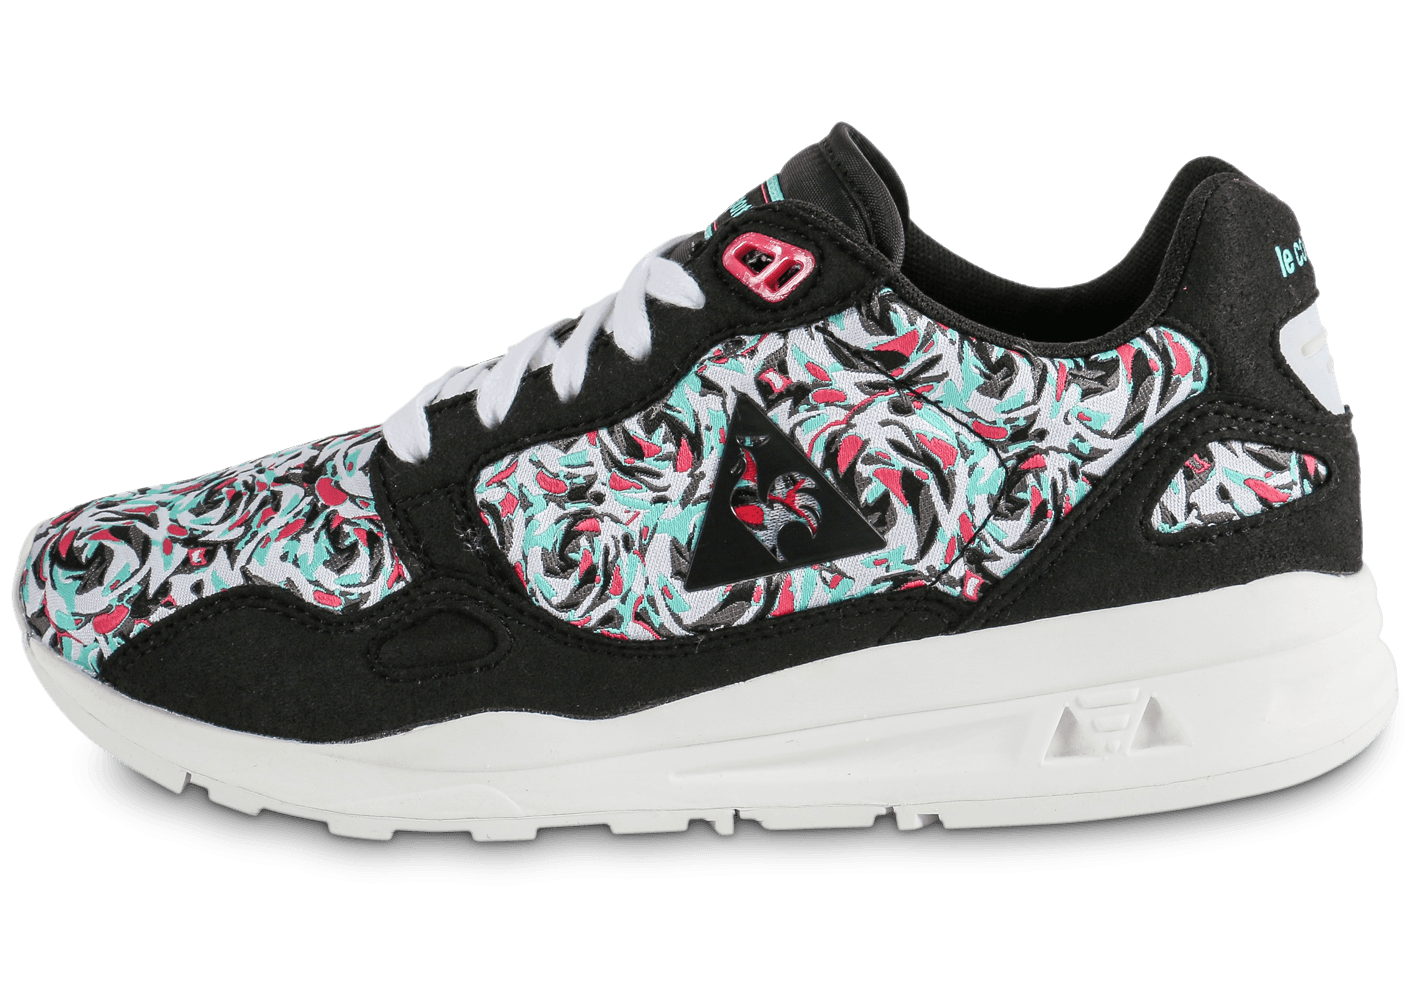 le coq sportif lcs r900 flower jacquard chaussures chaussures chausport. Black Bedroom Furniture Sets. Home Design Ideas